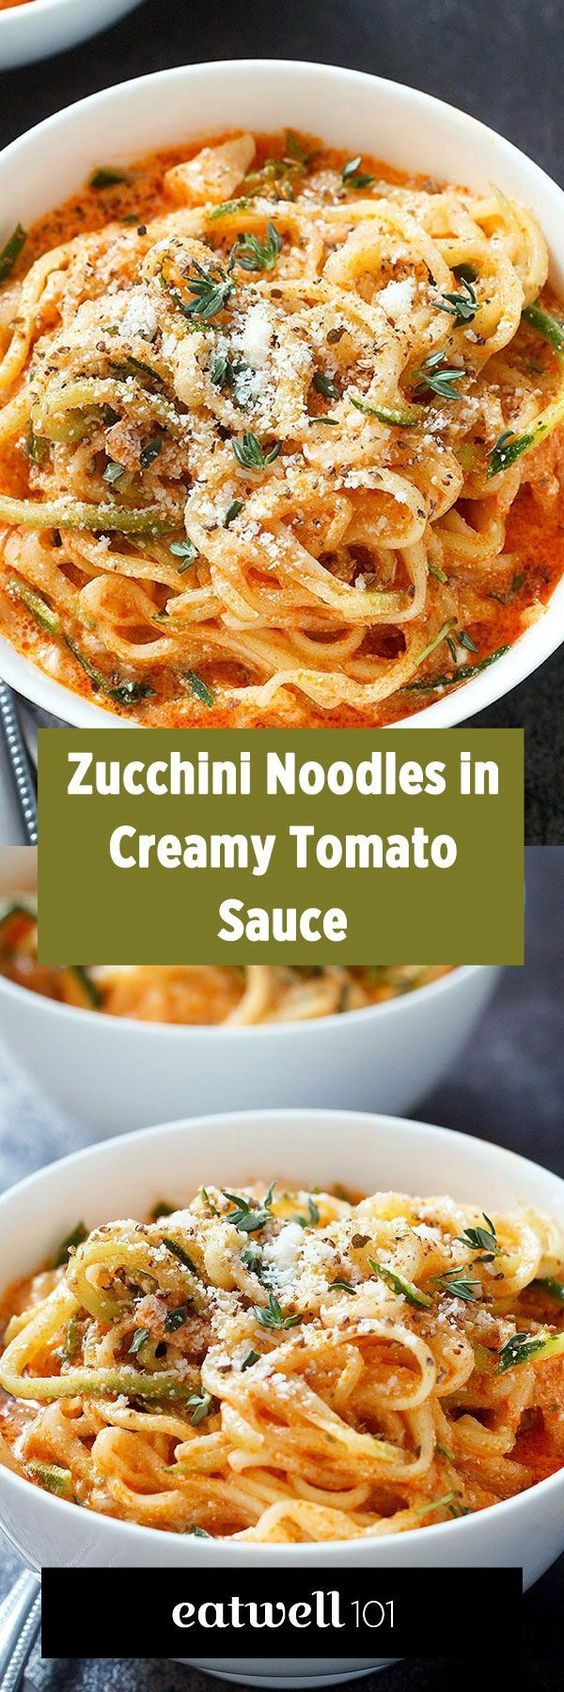 Try these zucchini noodles for a low carb comfort dinner that will be on your table in less than 20 minutes! Zucchini is quickly infused in a creamy tomato sauce flavored with onion and garlic. A g…: